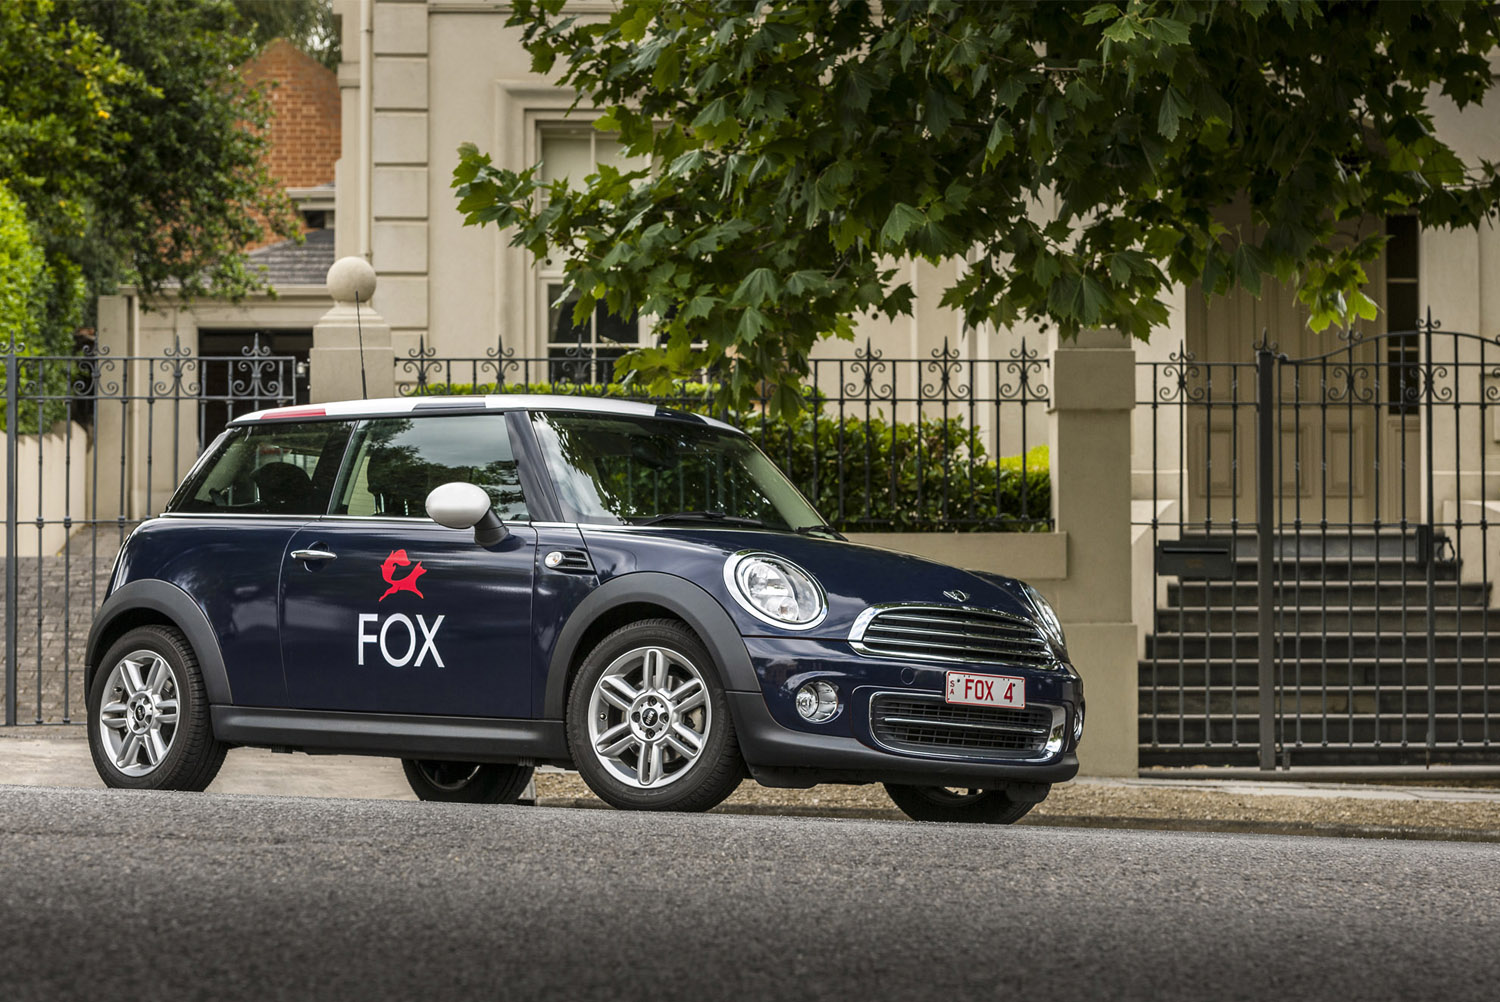 Brand identity and car livery for Fox Real Estate by Parallax Design, Australia